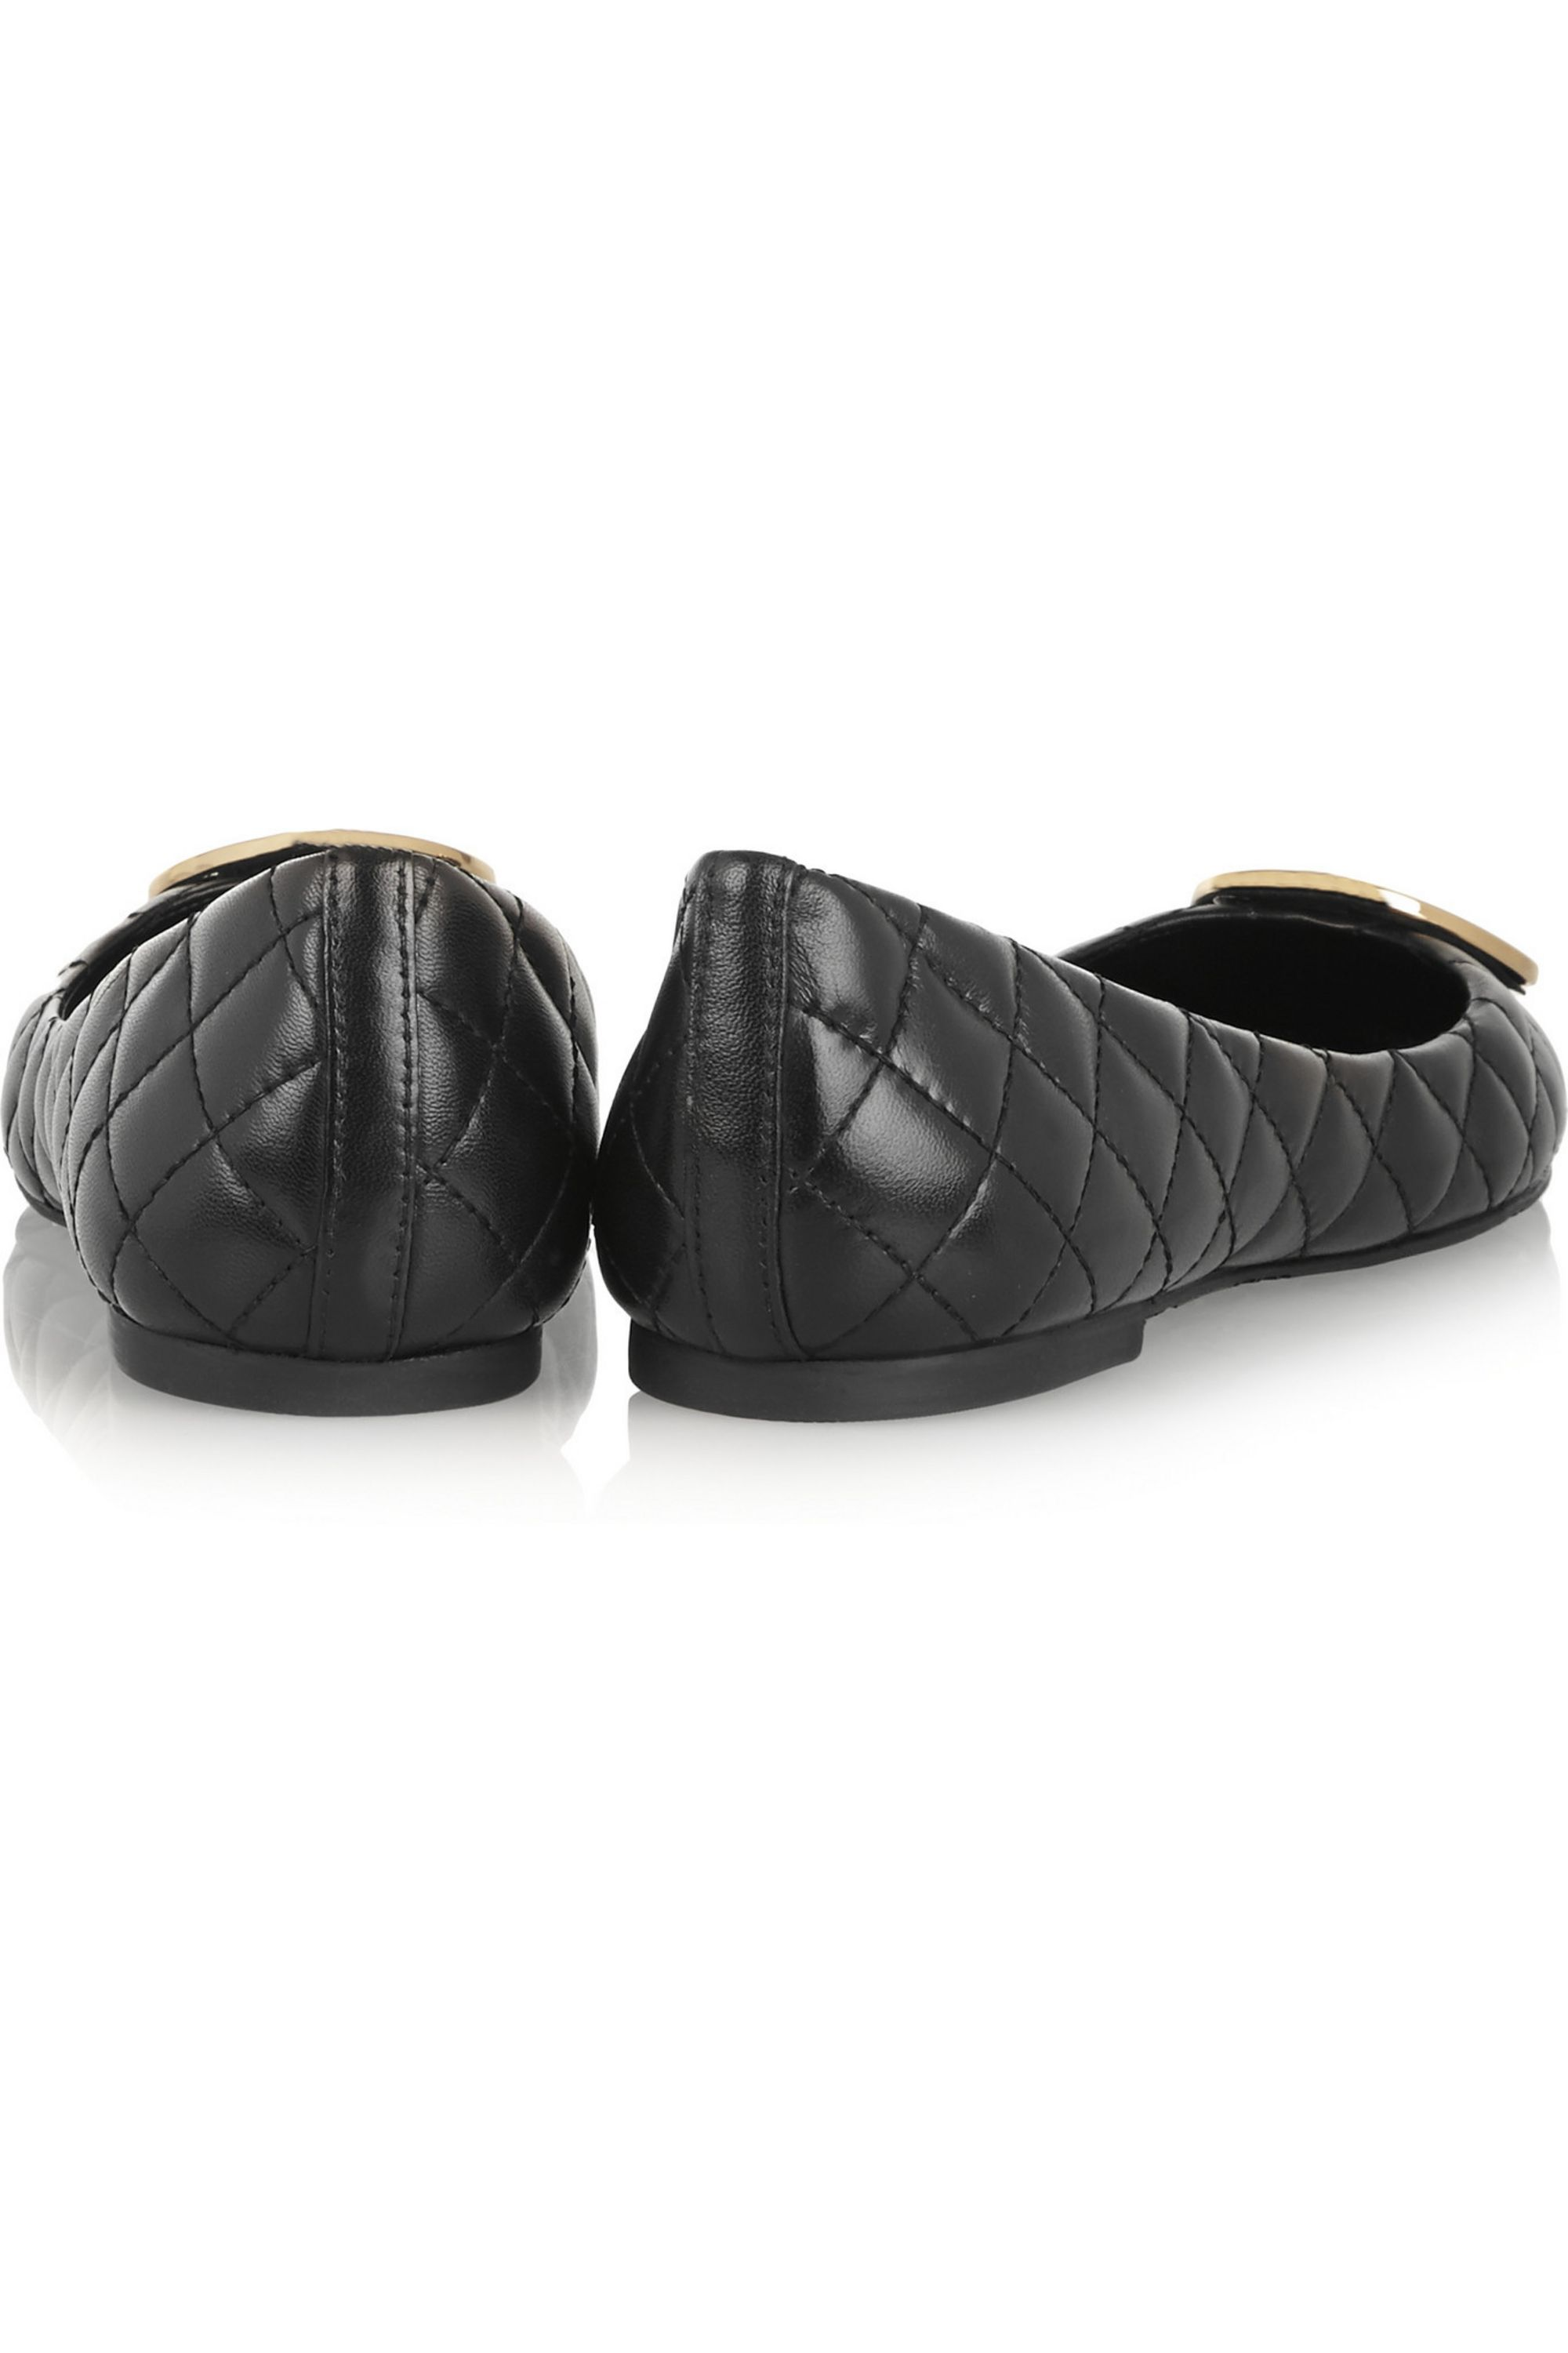 Tory Burch Quinn quilted leather ballet flats